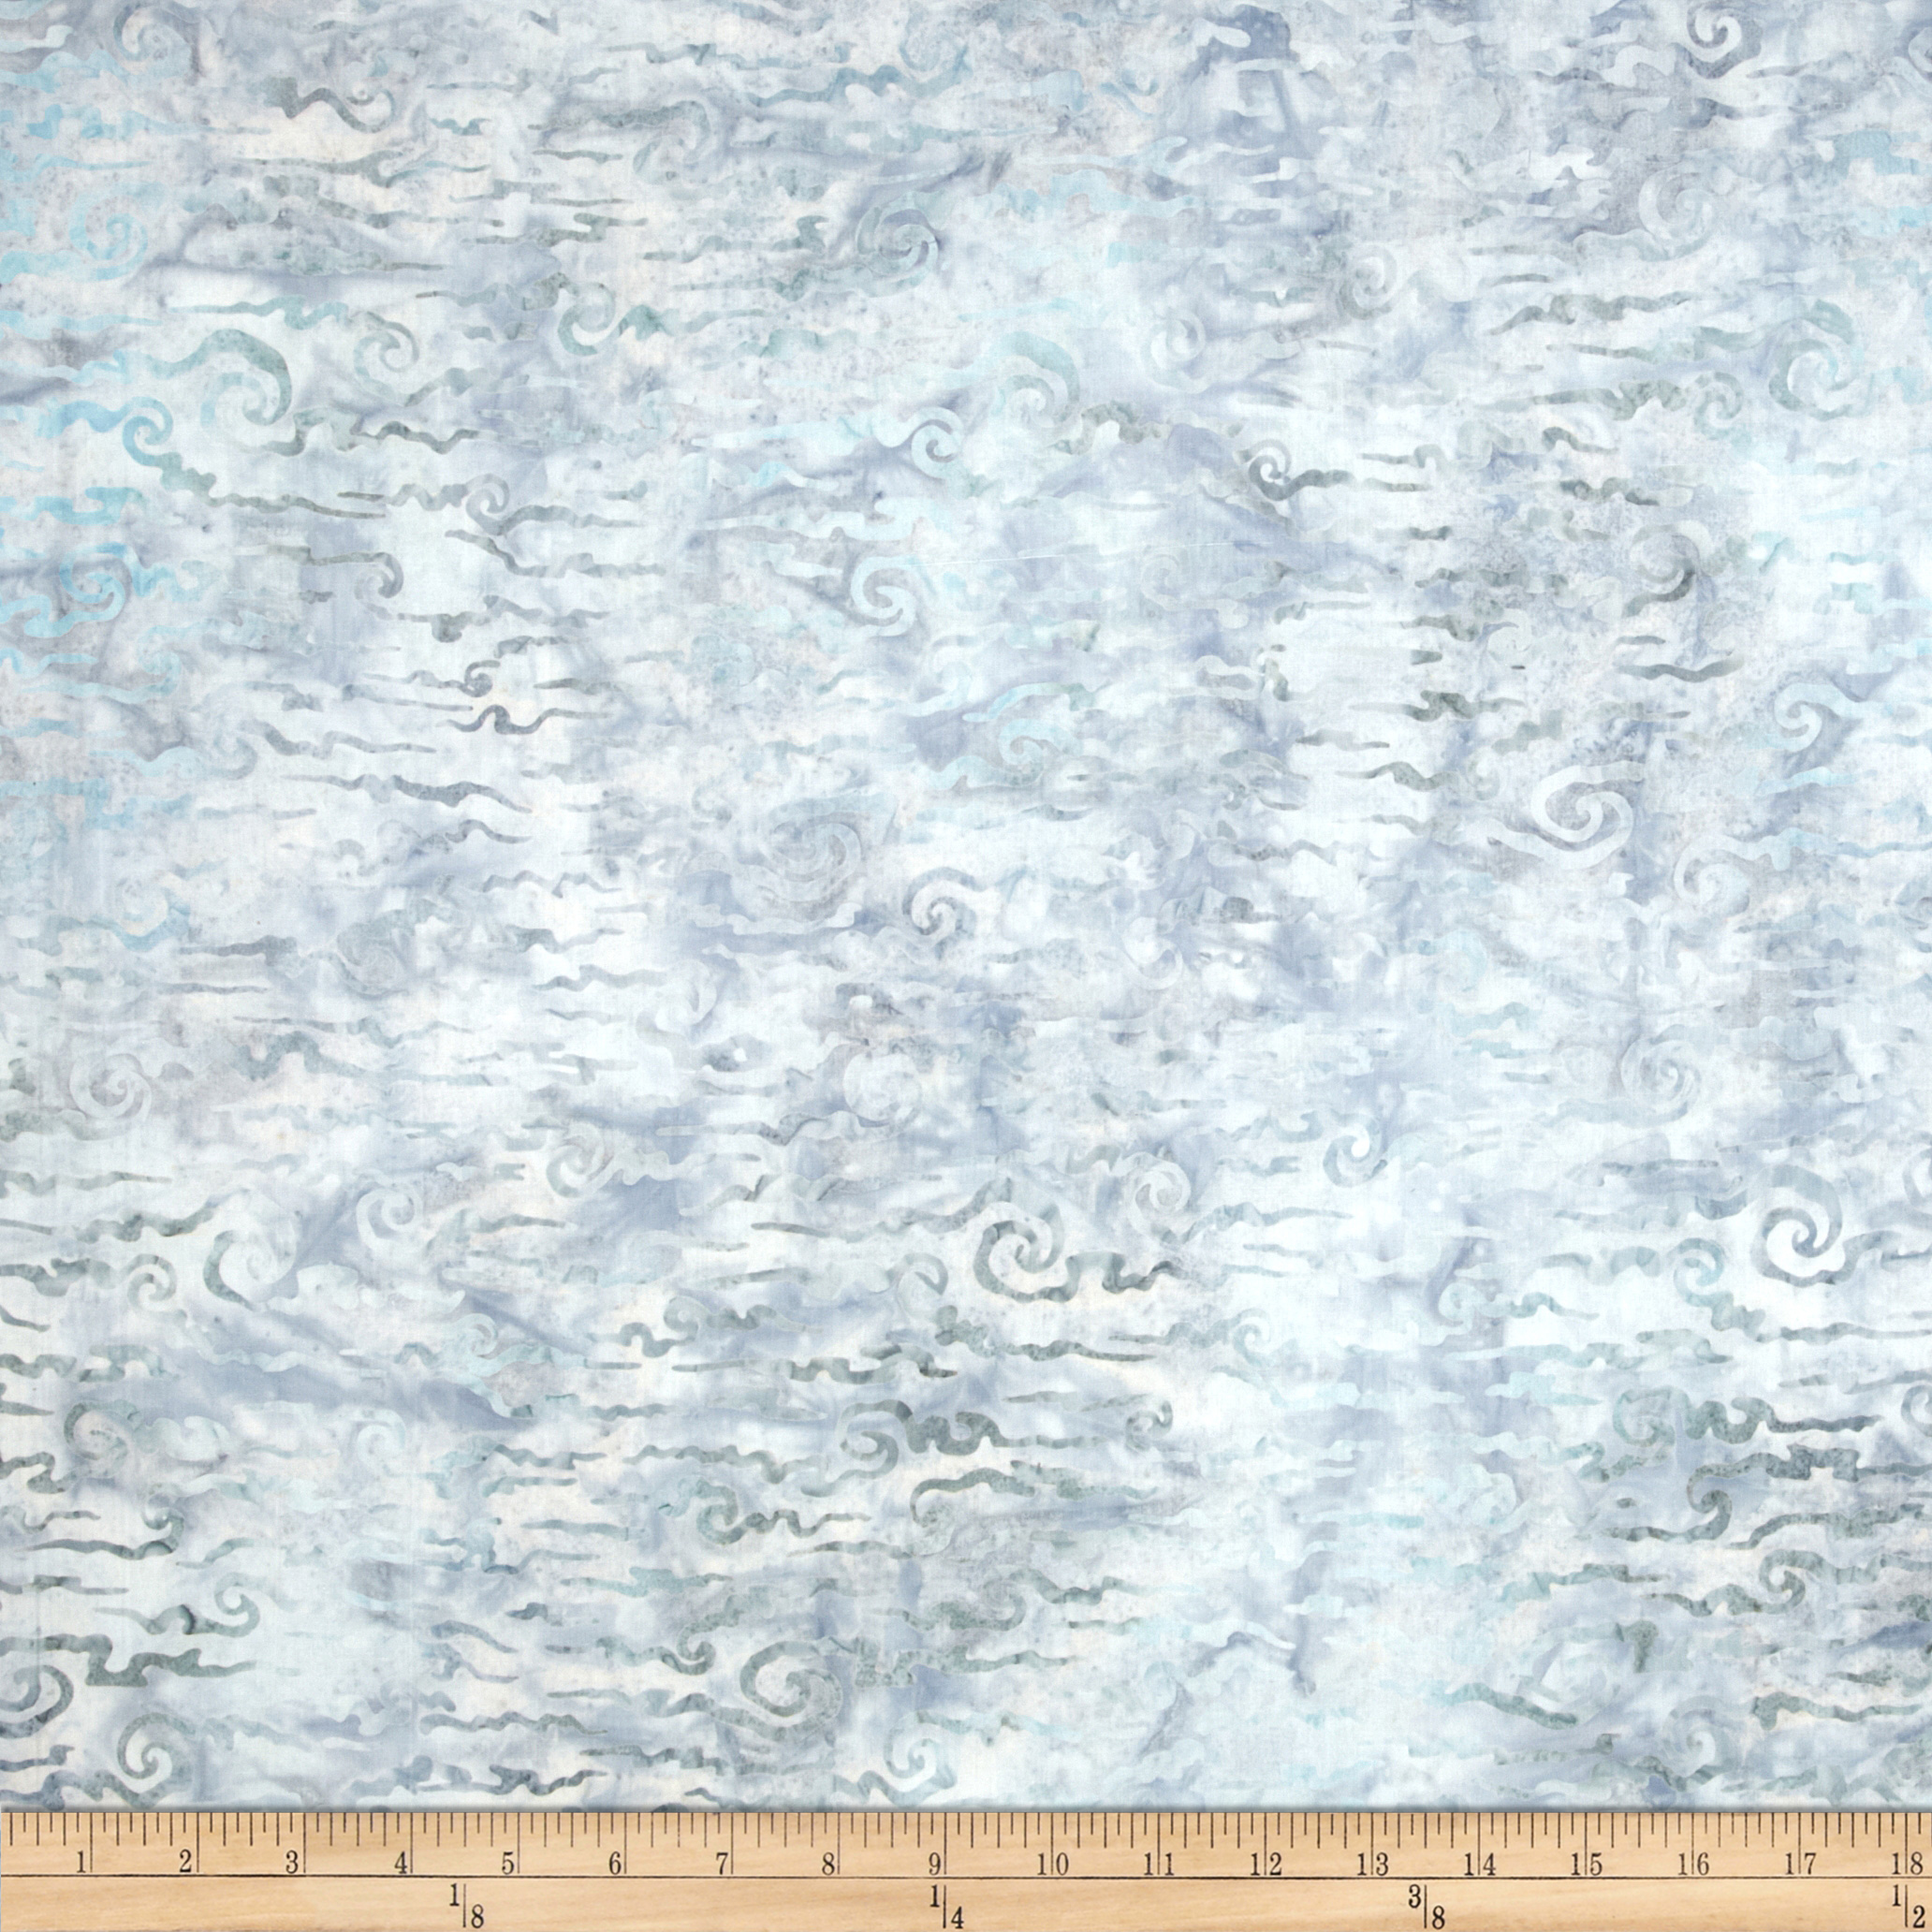 Artisan Batiks Nature's Creations Clouds Pewter Fabric